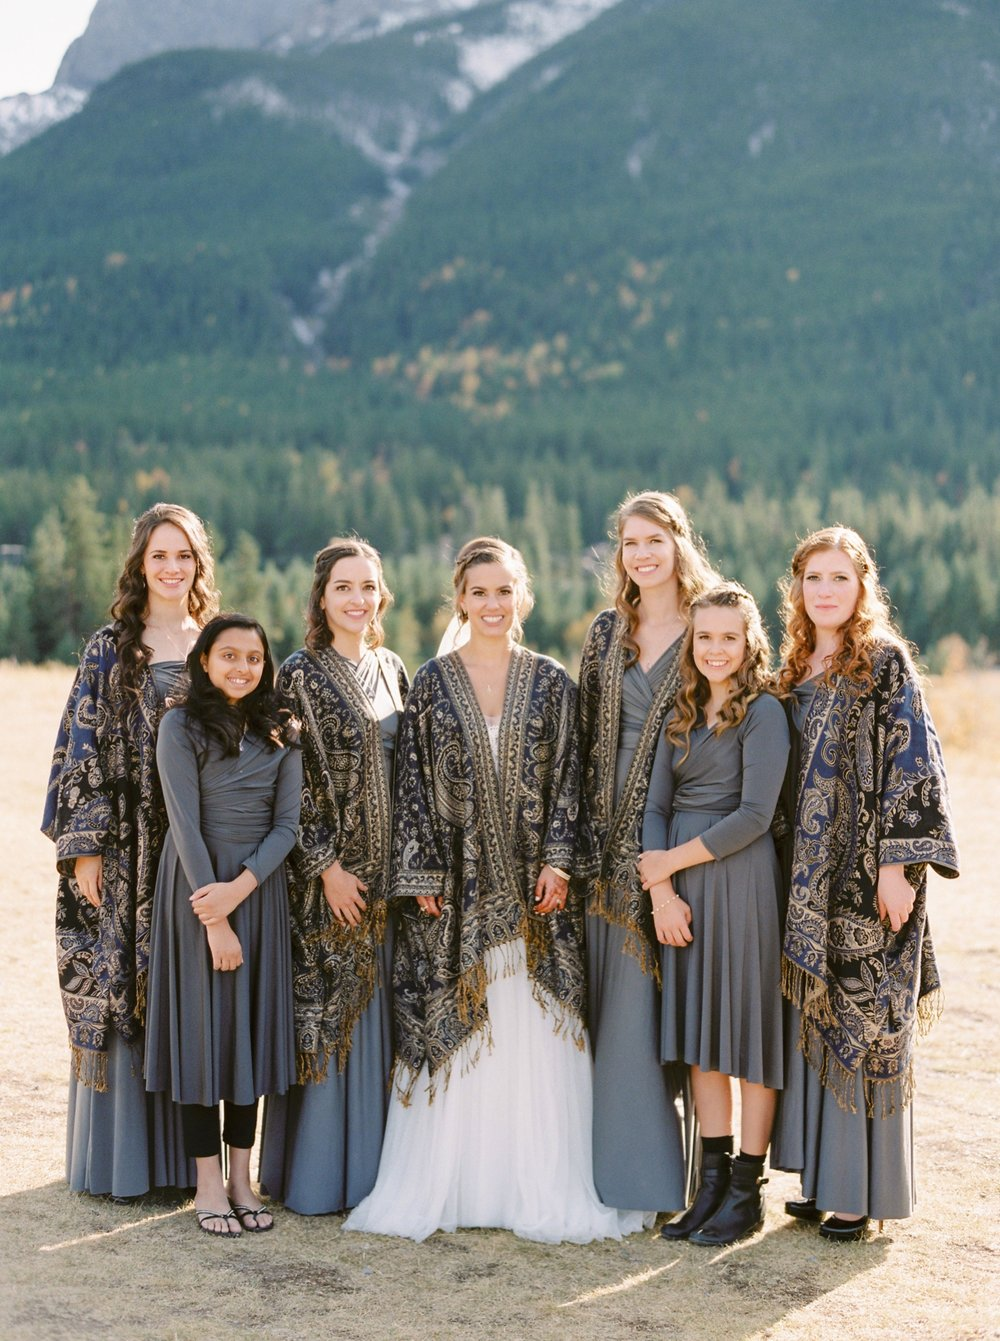 Calgary wedding photographers | fine art film | Justine Milton Photography | canmore wedding photographers | bridesmaids portraits | mountain photography